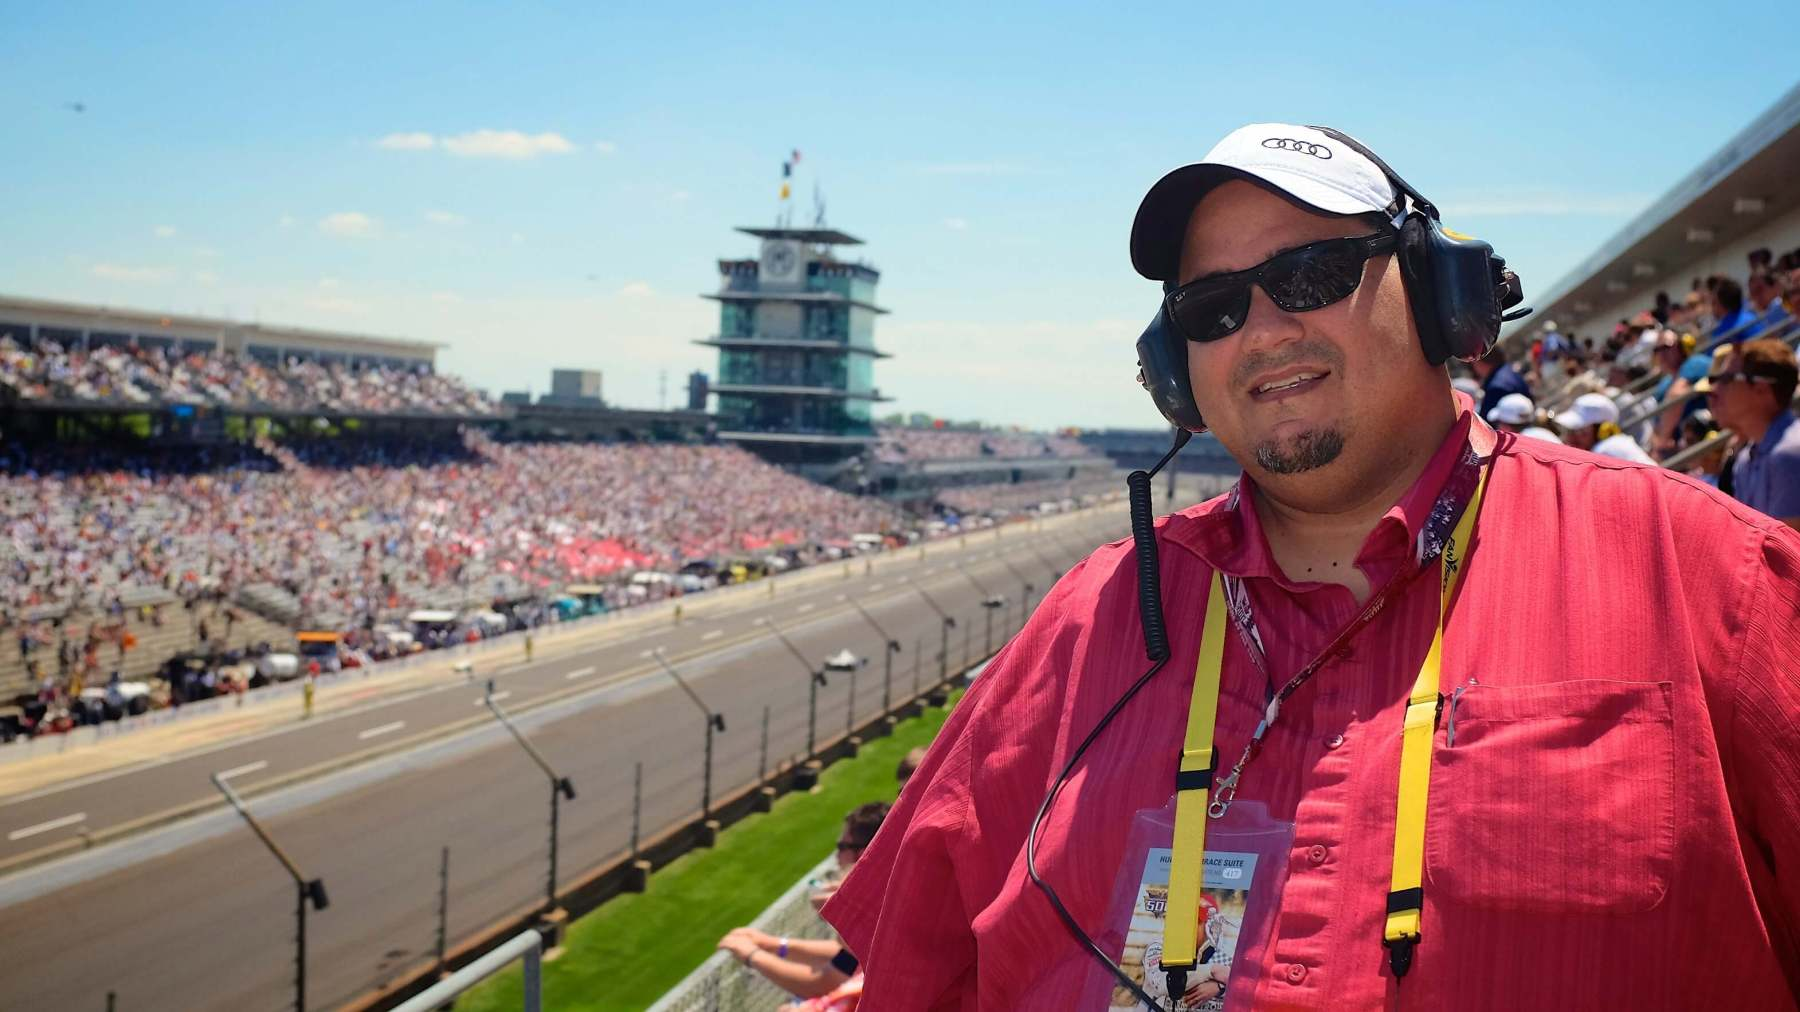 Our incredibly generous friend, Chris Lema, who helped us check off our Indy 500 bucket list item in epic fashion!